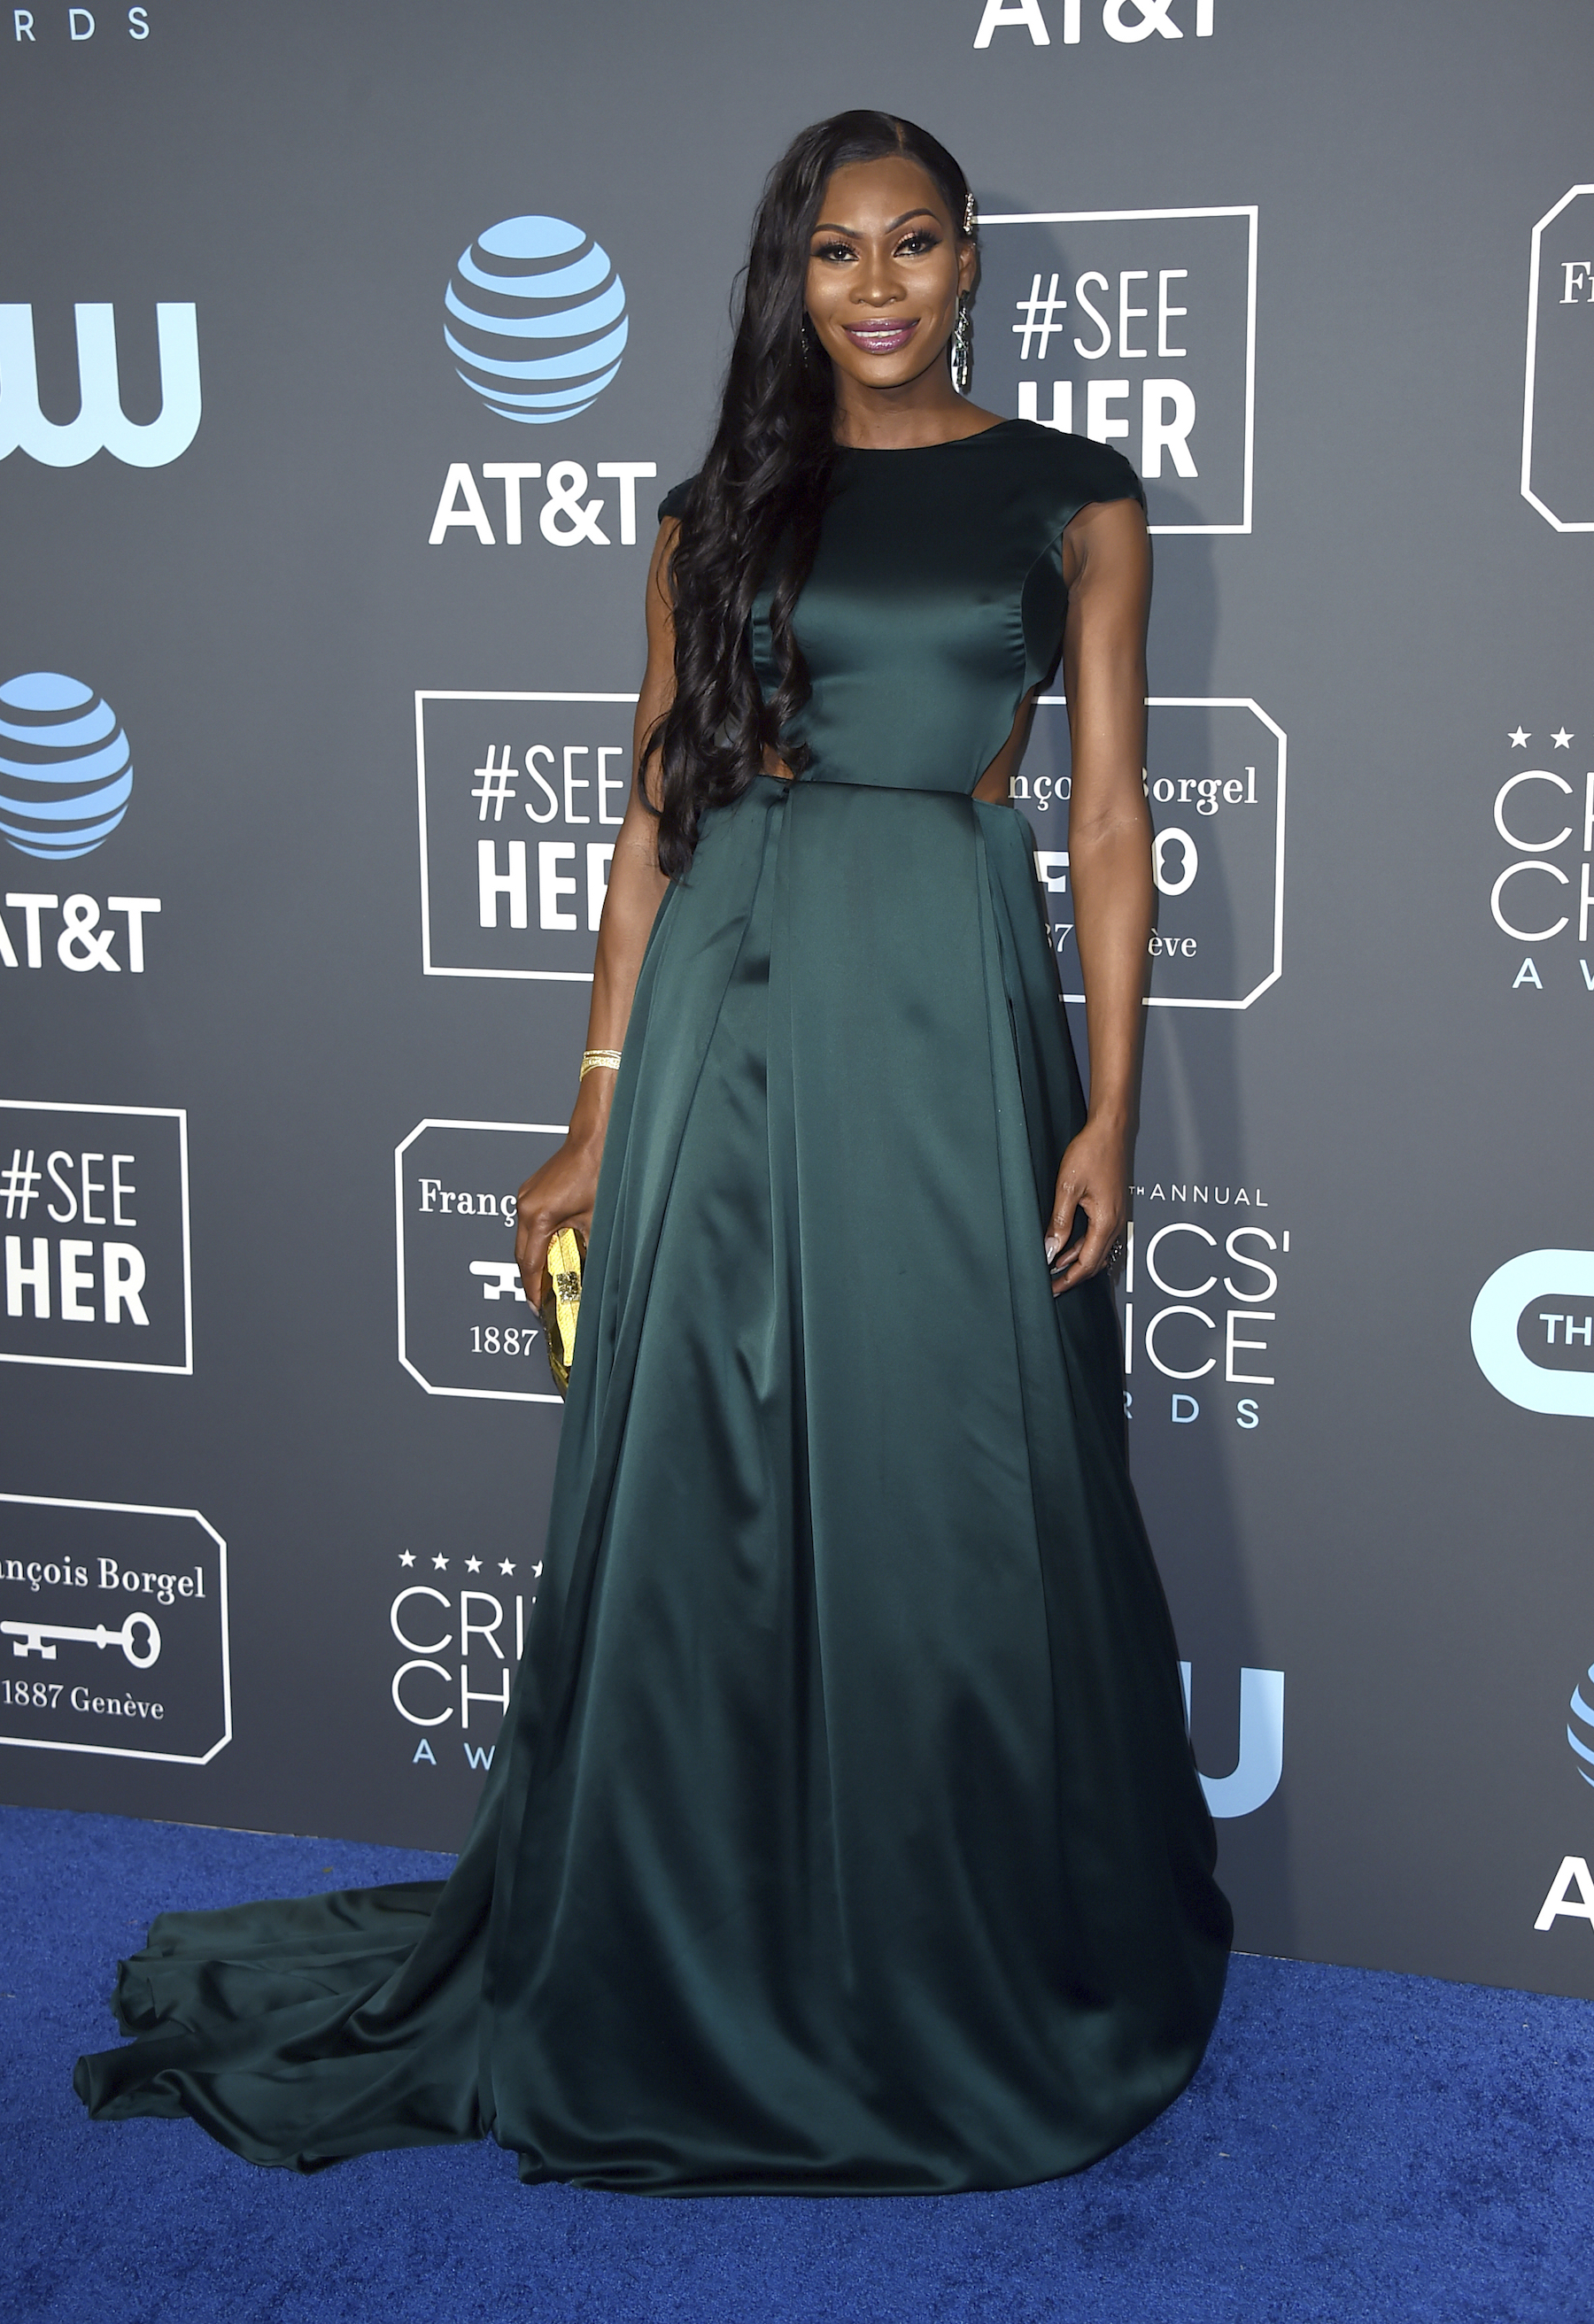 "<div class=""meta image-caption""><div class=""origin-logo origin-image ap""><span>AP</span></div><span class=""caption-text"">Dominique Jackson arrives at the 24th annual Critics' Choice Awards on Sunday, Jan. 13, 2019, at the Barker Hangar in Santa Monica, Calif. (Jordan Strauss/Invision/AP)</span></div>"